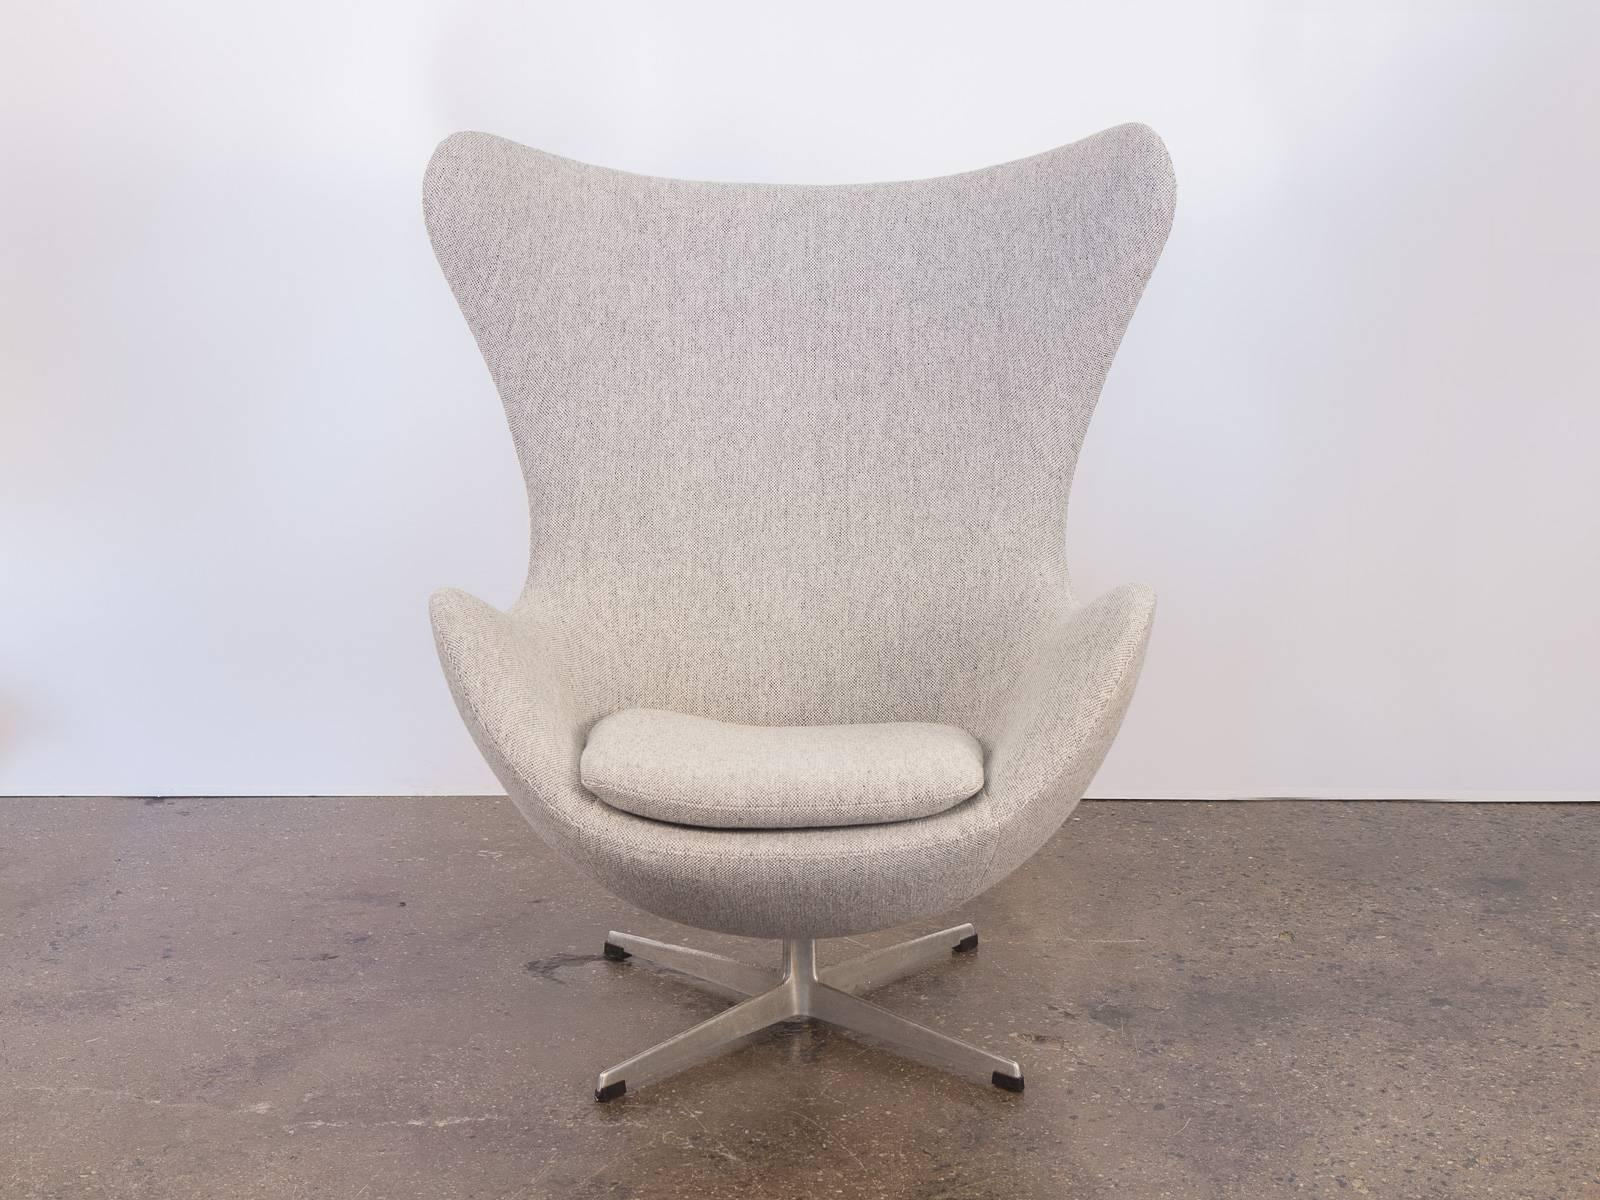 The Iconic Egg Chair And Matching Footstool Designed By Arne Jacobsen In  1958. Our Chair